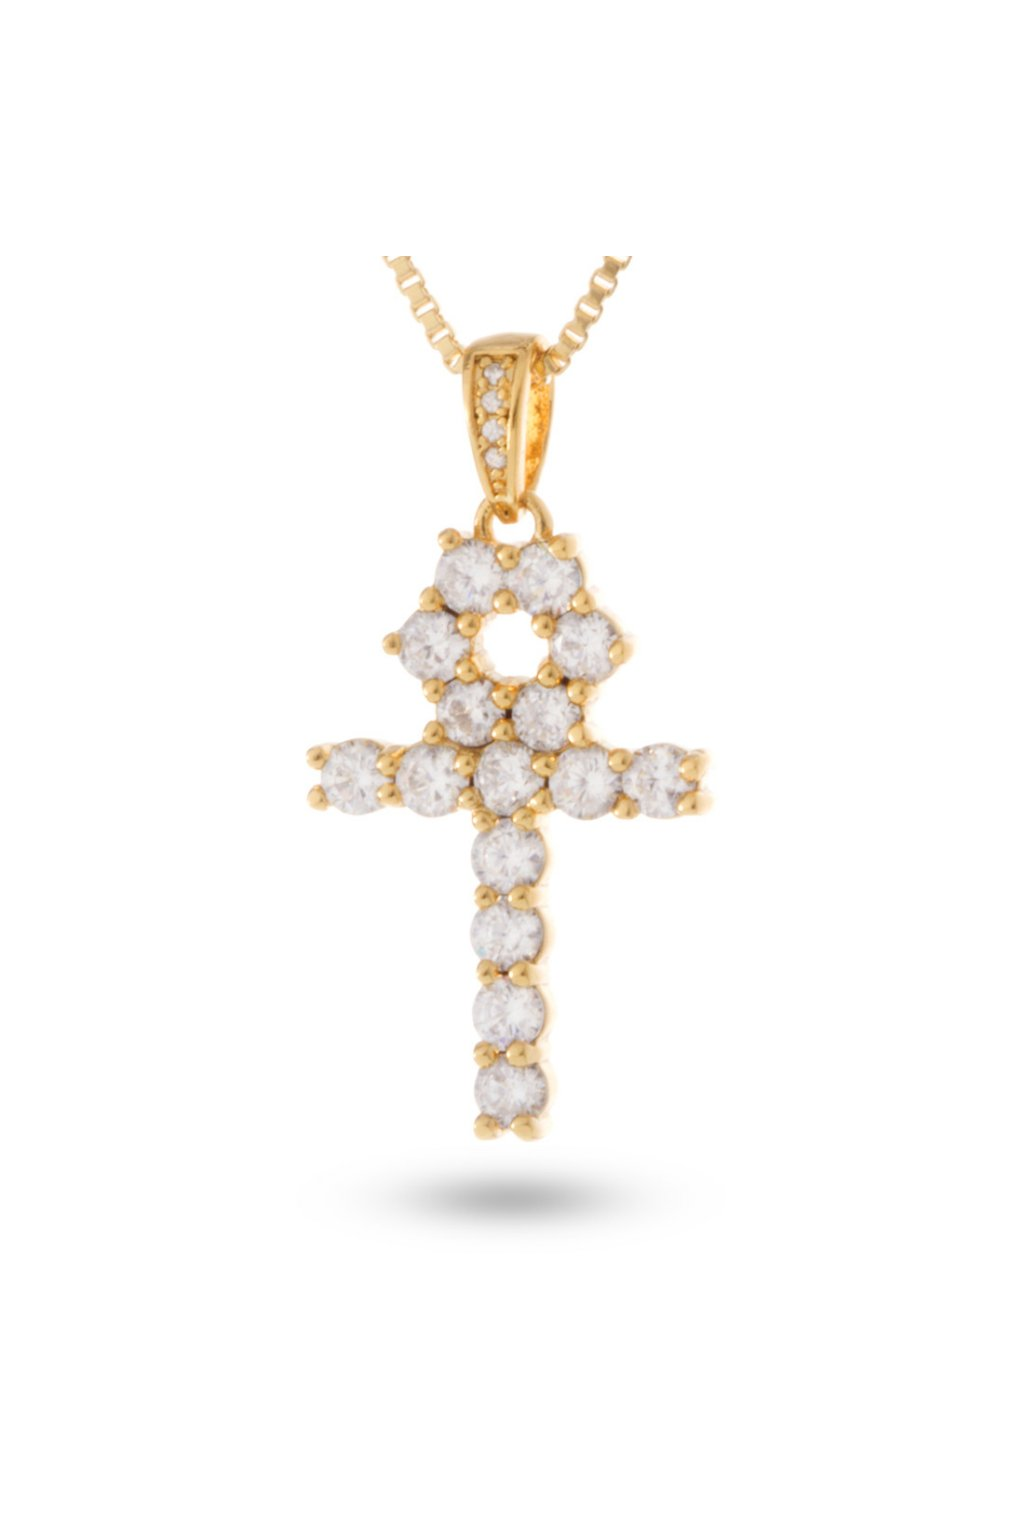 15502 2F1481051485 2Fnkx12150 the sterling silver micro ankh cross